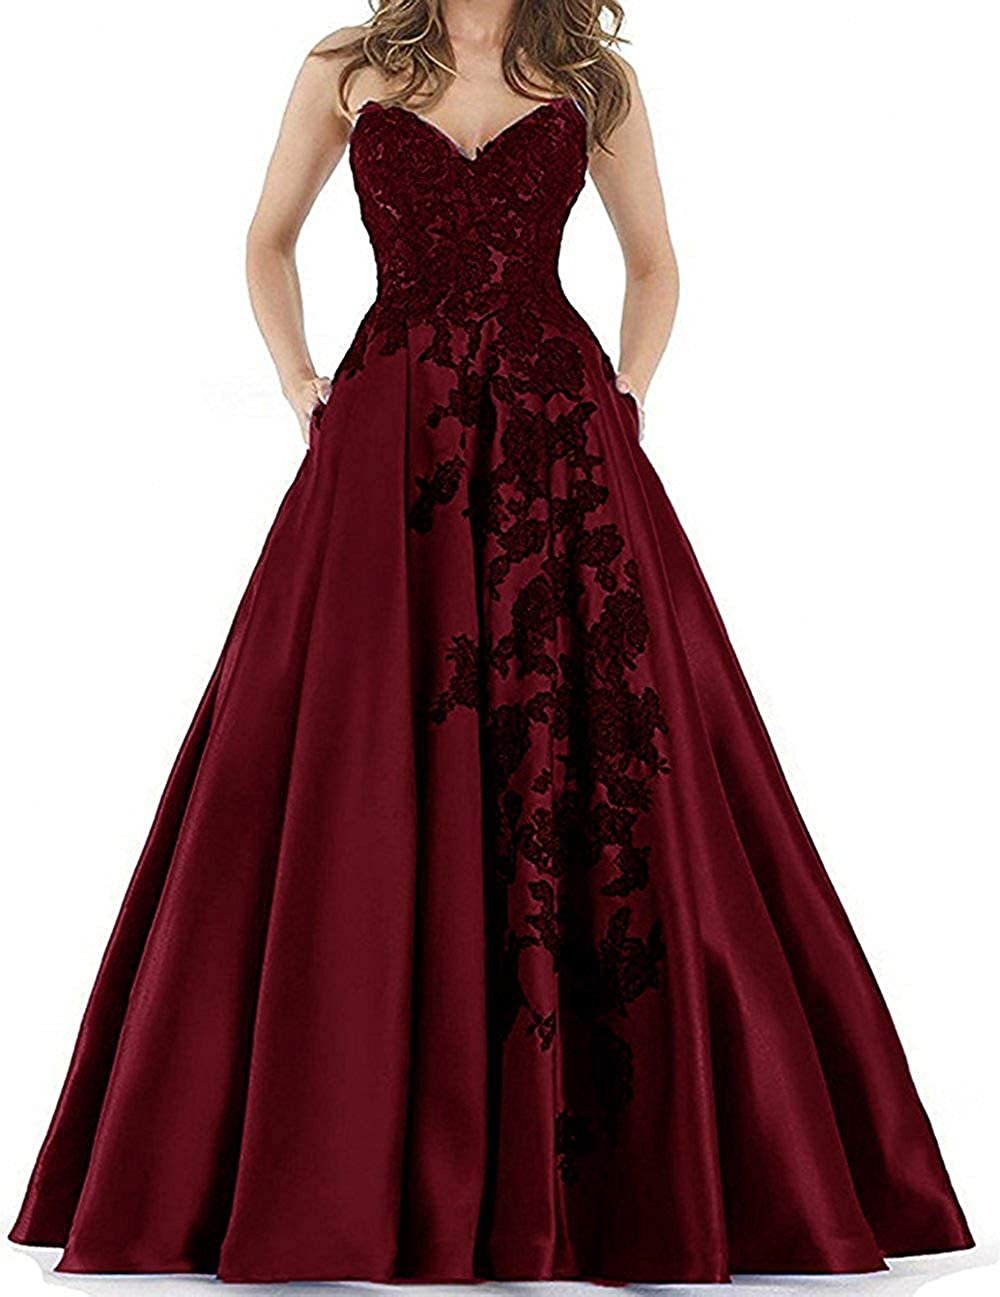 Burgundy JAEDEN Prom Dresses Long Quinceanera Dress Ball Gown Formal Evening Gowns Sweetheart Prom Dress